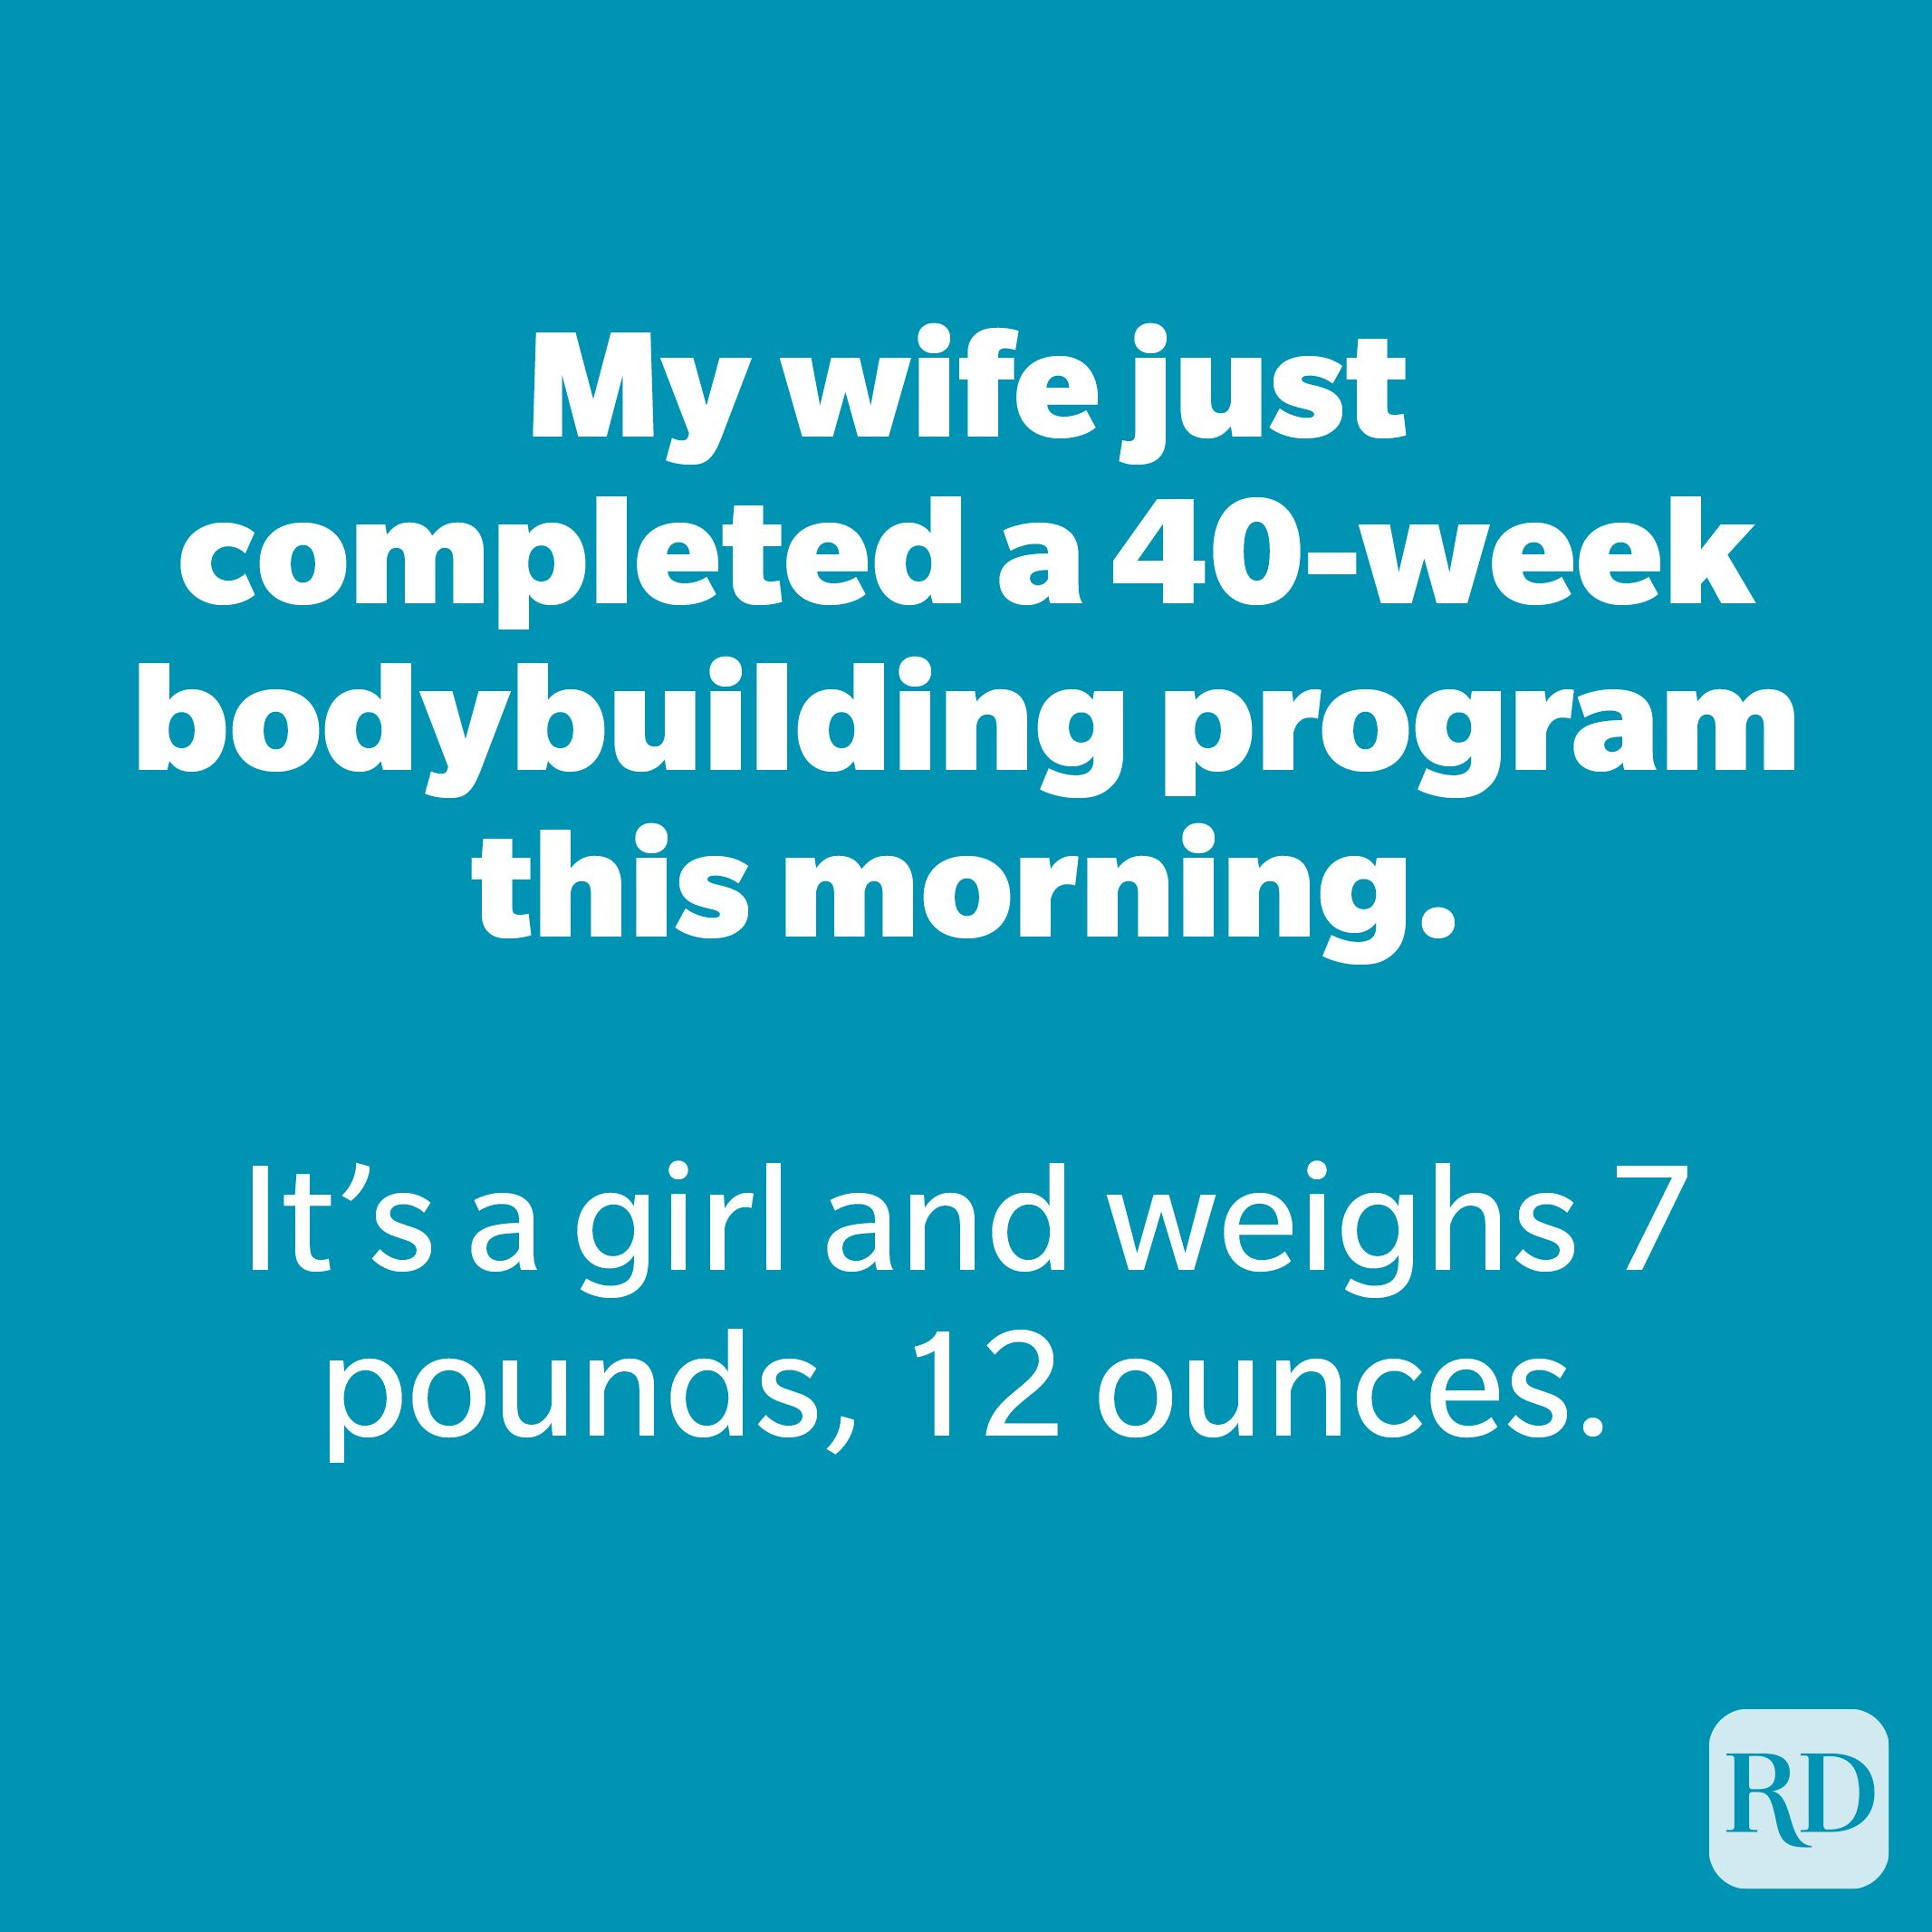 My wife just completed a 40-week bodybuilding program this morning.